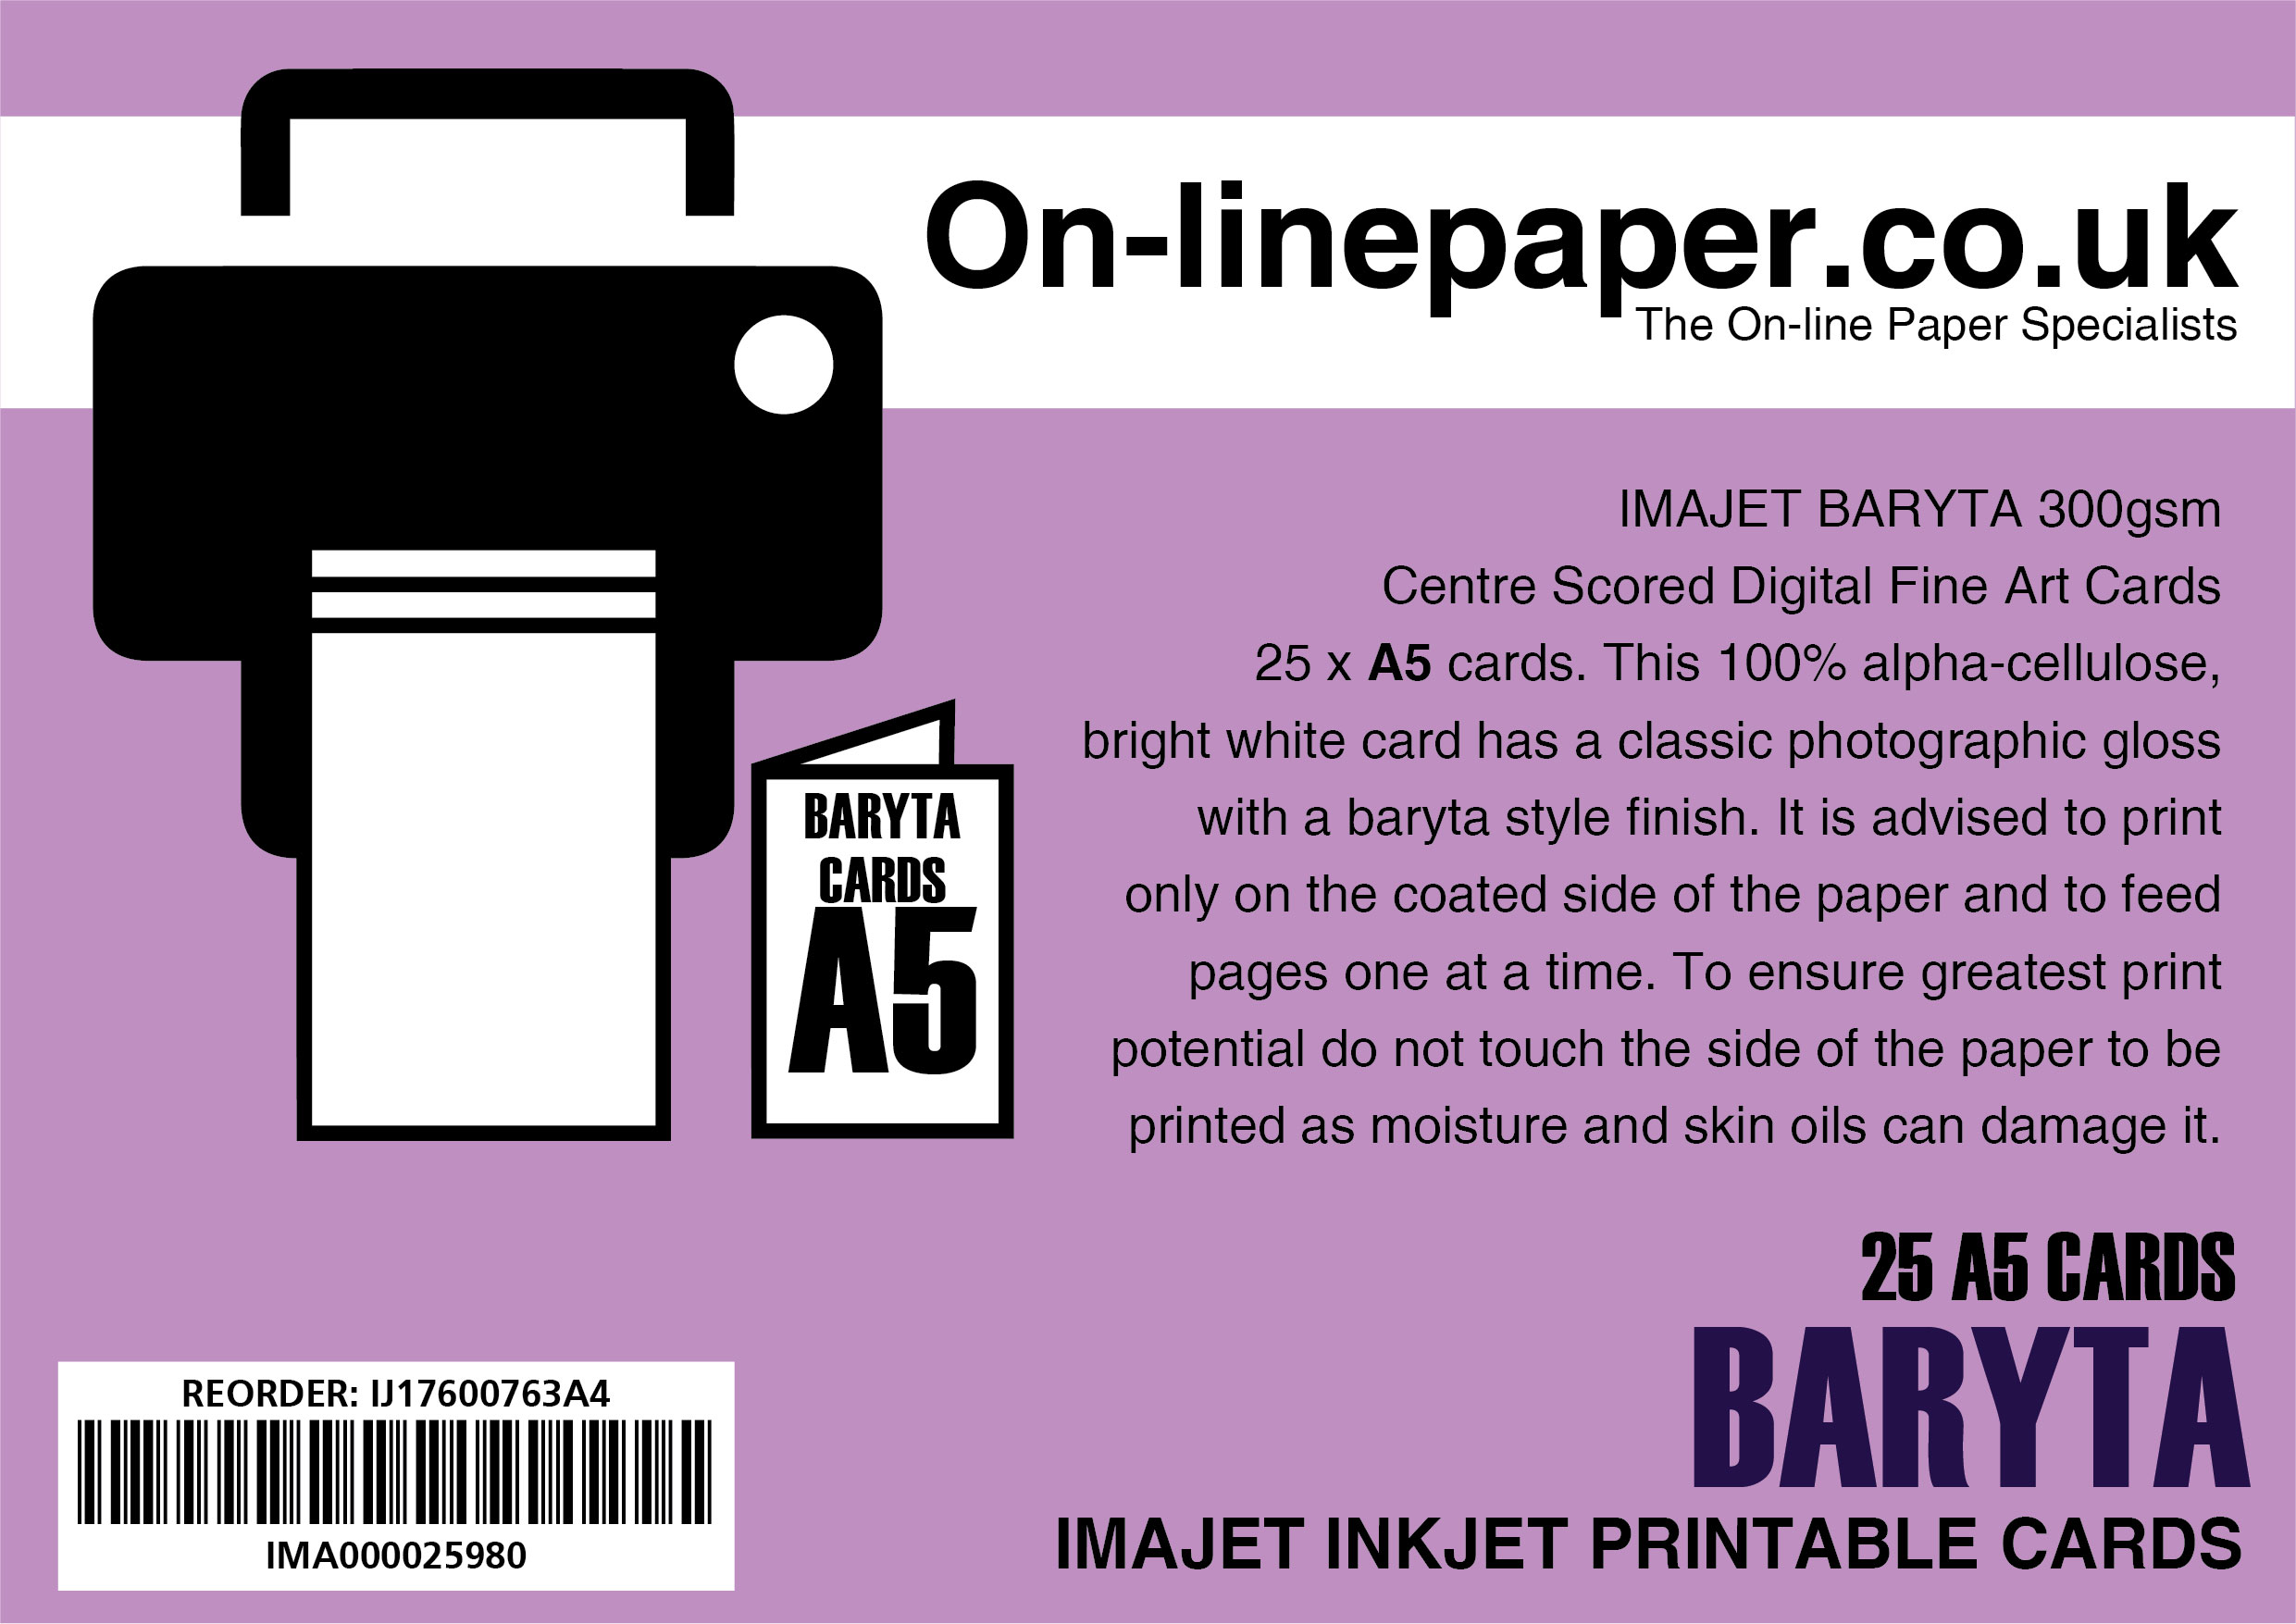 IMAJET BARYTA 300gsm Centre Scored Digital Fine Art Cards 25 x A4 cards